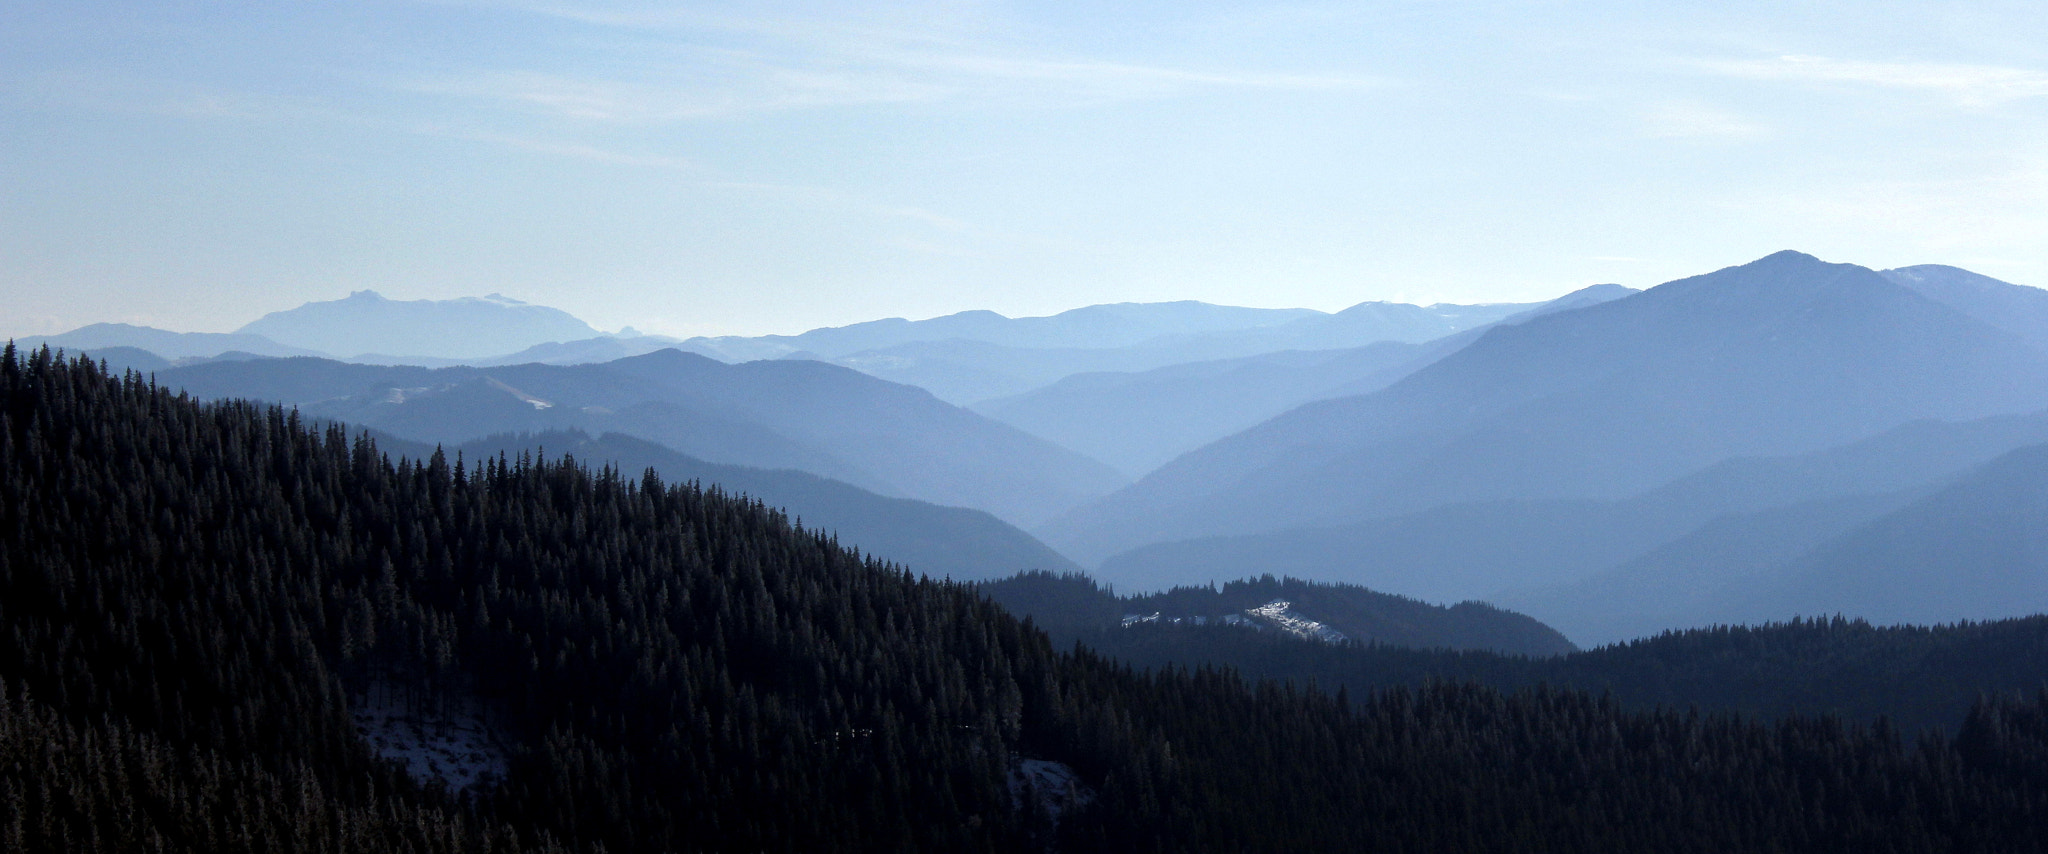 Photograph Mountain layers  by Vlad Petrescu on 500px